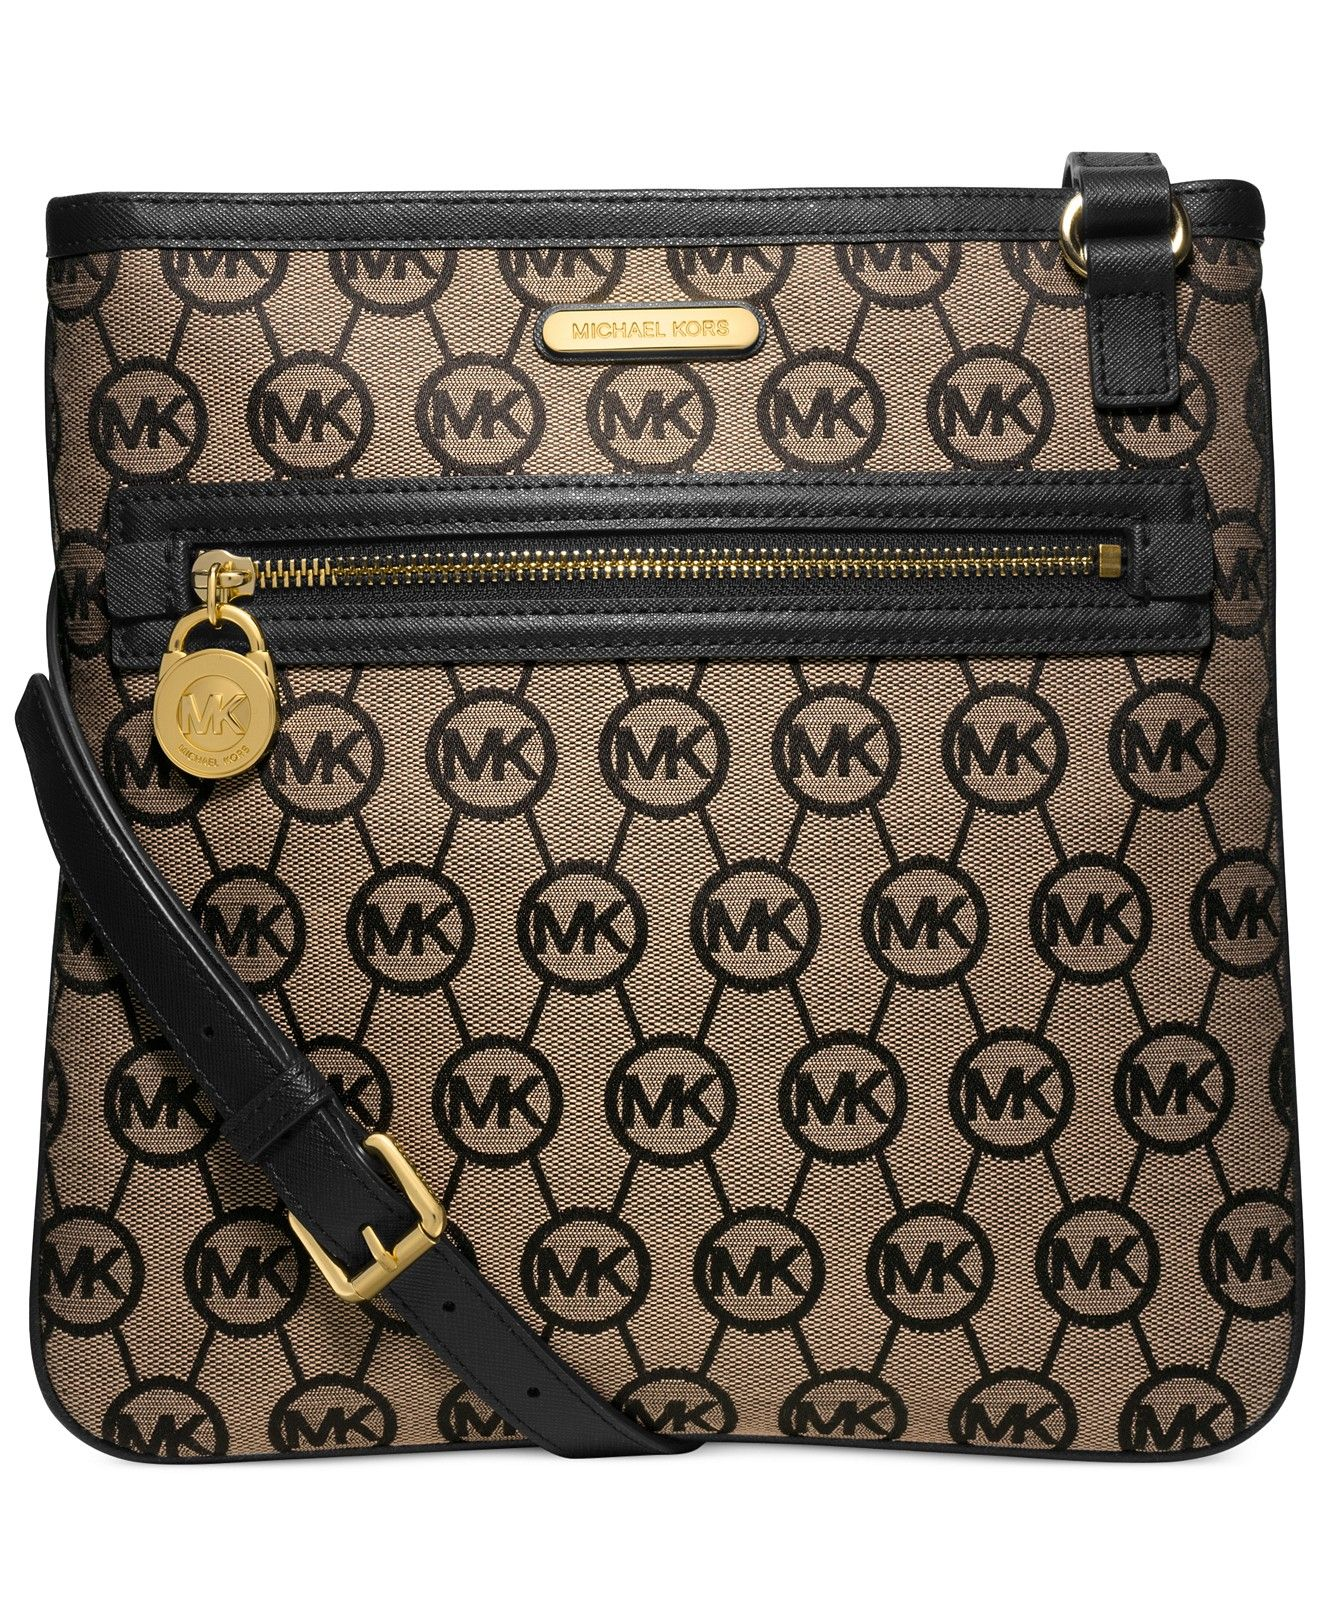 7377810fac32 MICHAEL Michael Kors Kempton Large Crossbody - MICHAEL Michael Kors -  Handbags  u0026 Accessories -